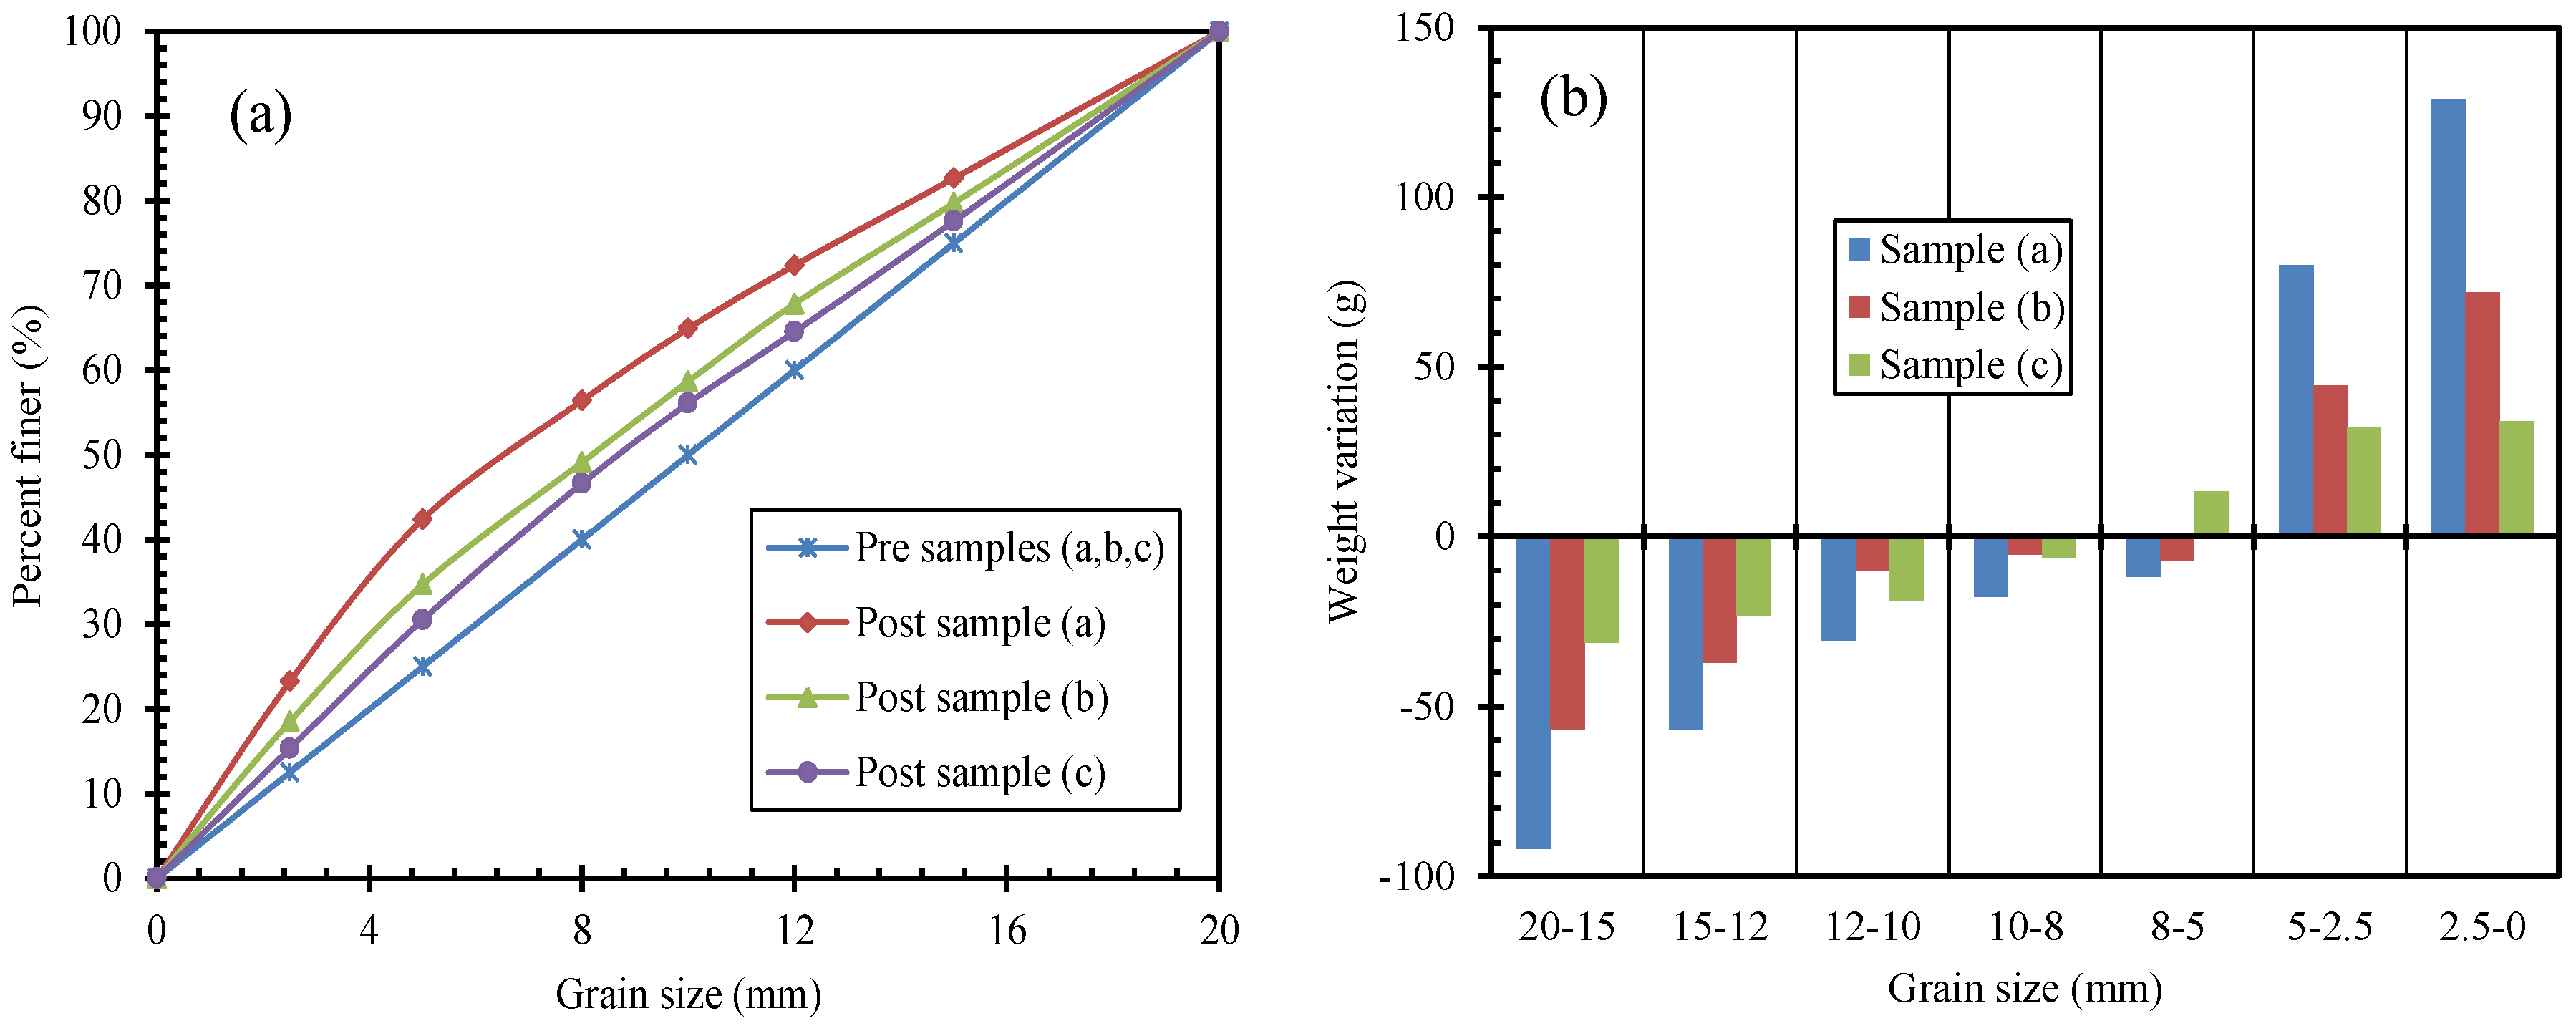 weight variation in samples